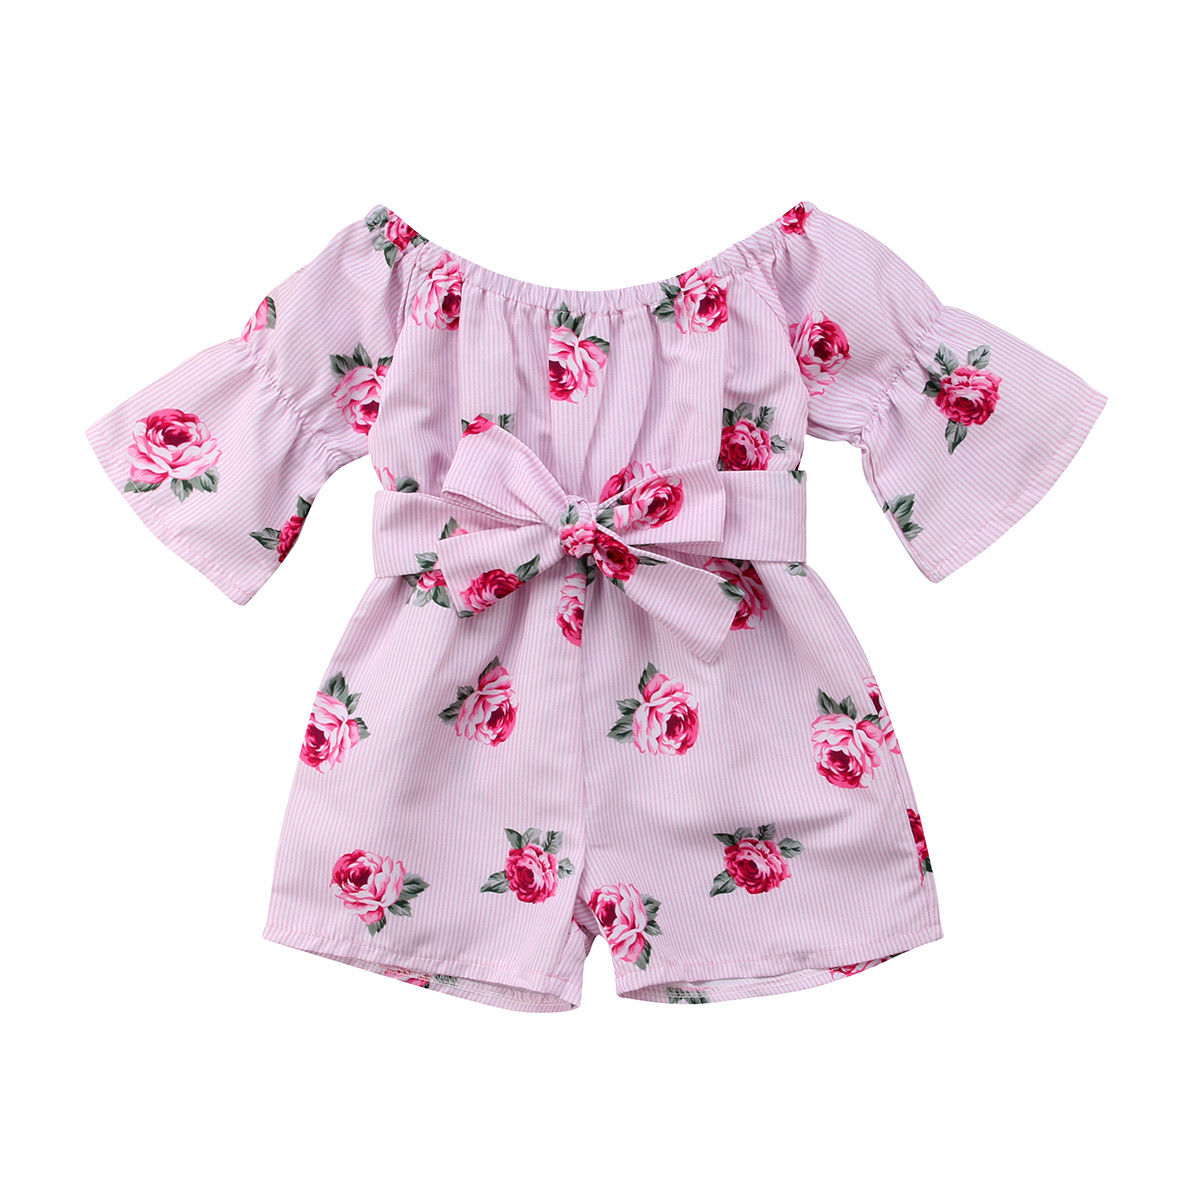 0-5T Princess Baby Girl Floral Print   Romper   Long Sleeve Jumper Sunsuit Set Holiday Children Clothes